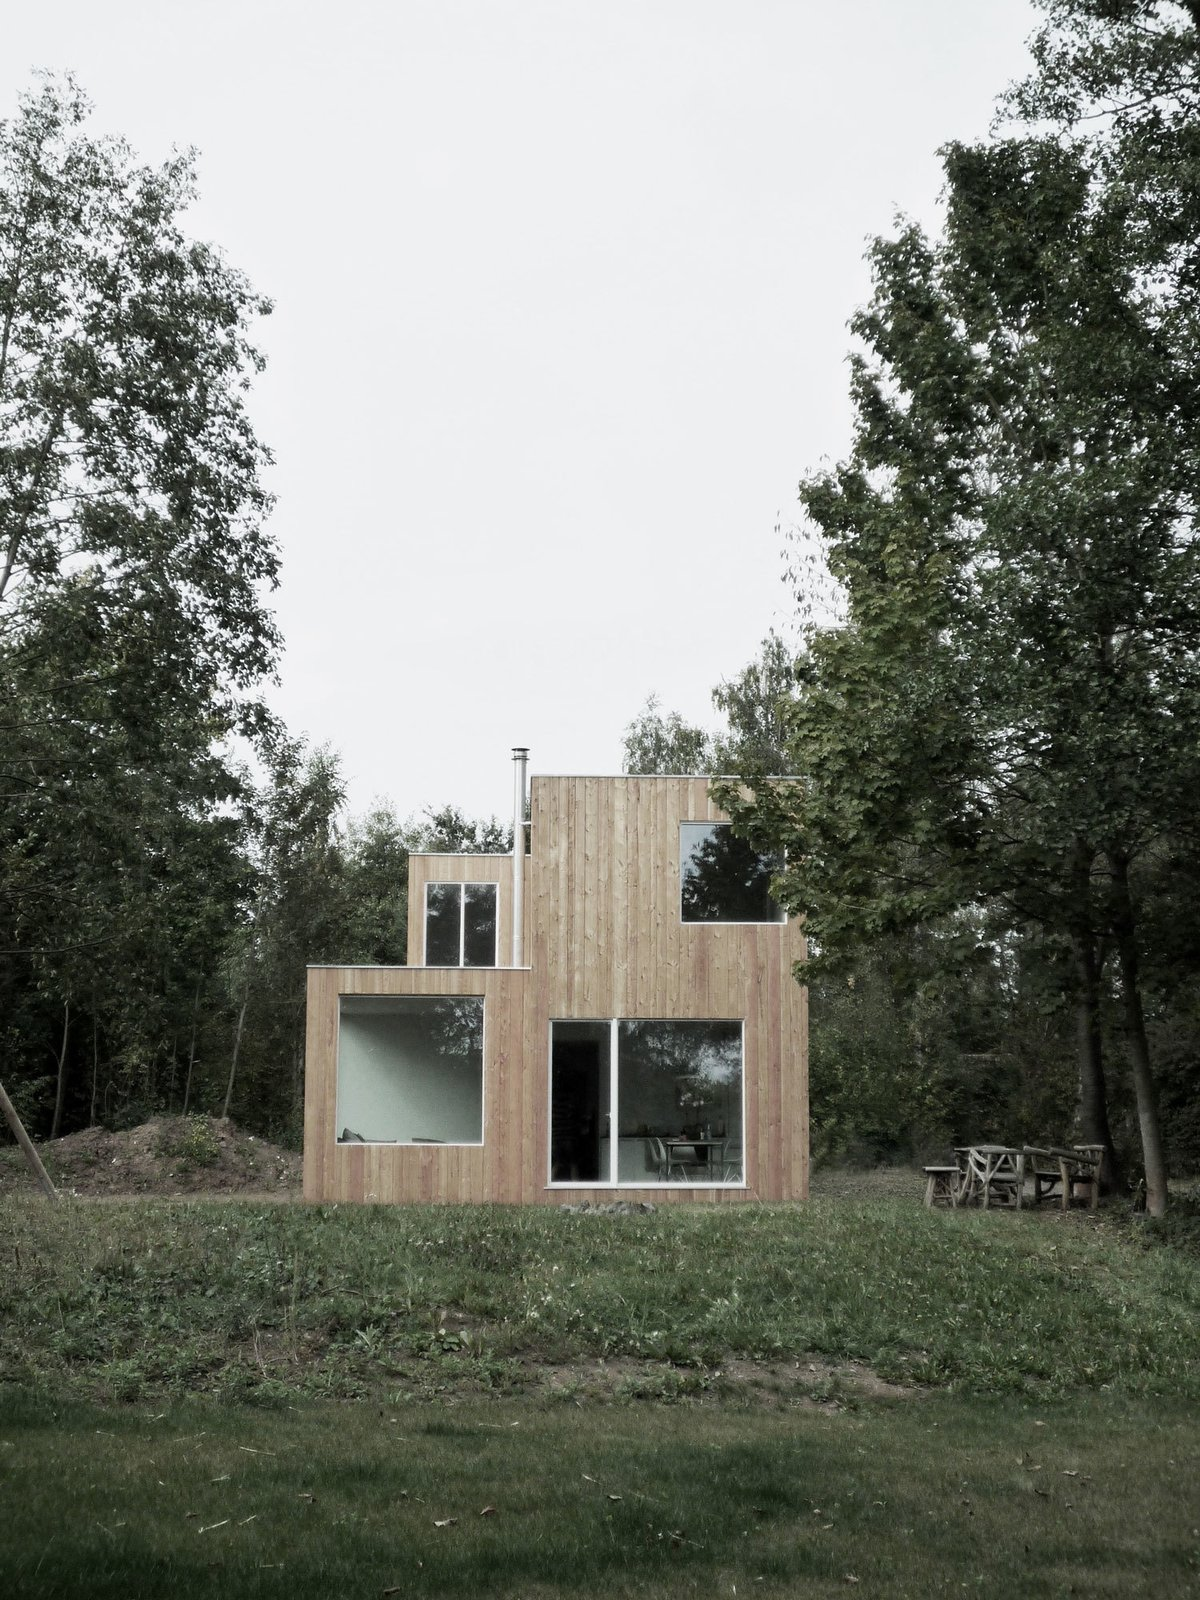 In Hungen, a lakeside town, regulations require homes to occupy a footprint of no more than 538 square feet, and be only one story tall. NKBAK worked around these limitations by designing a modern home with only a partial second story.  Cabins & Hideouts by Stephen Blake from Simple Box House is a Refreshing Vacation Retreat